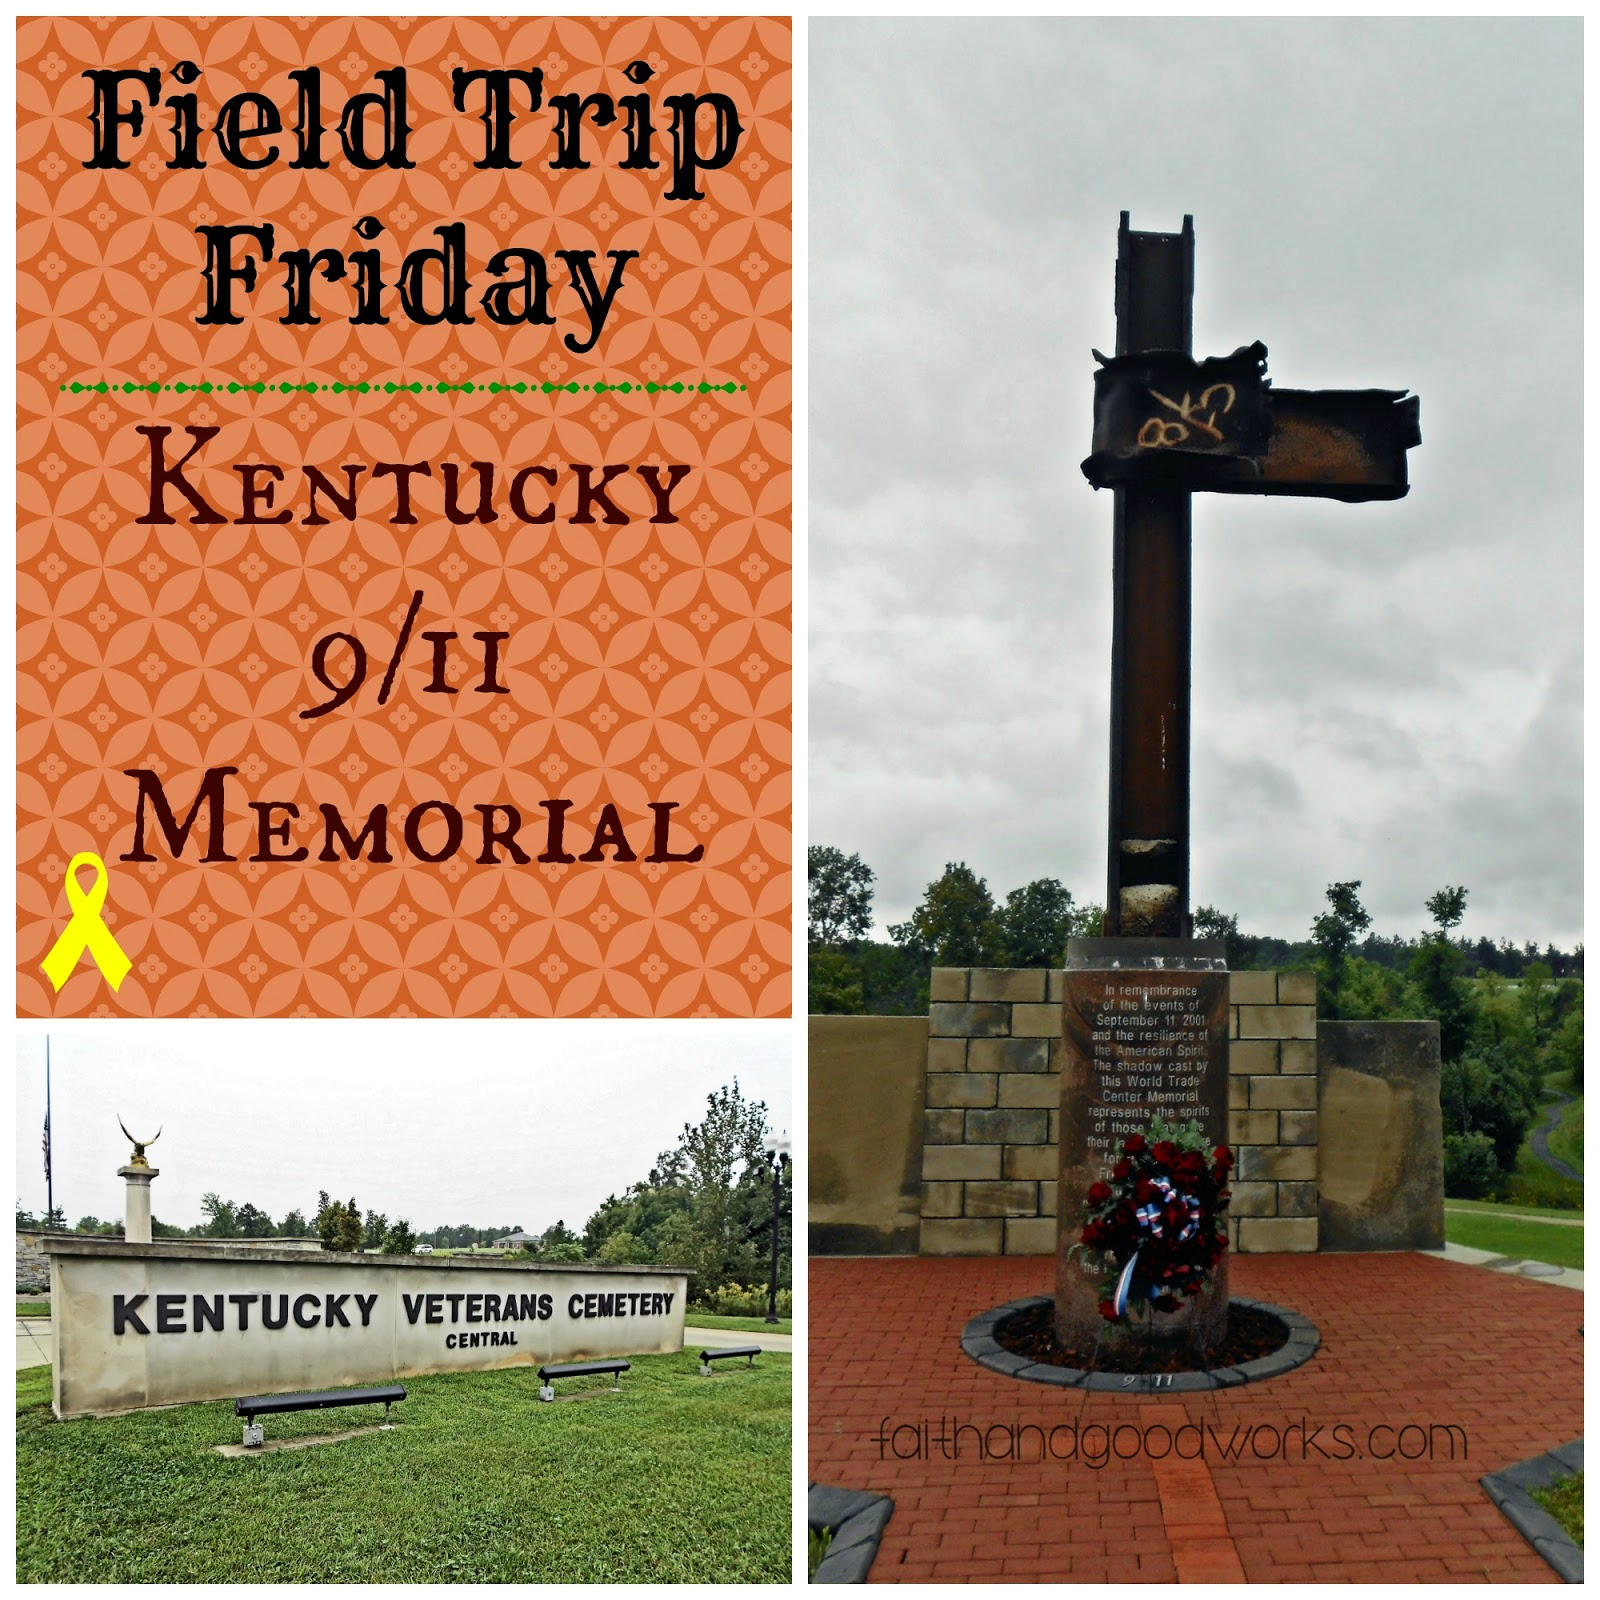 Field Trip Friday: Kentucky 9/11 Memorial